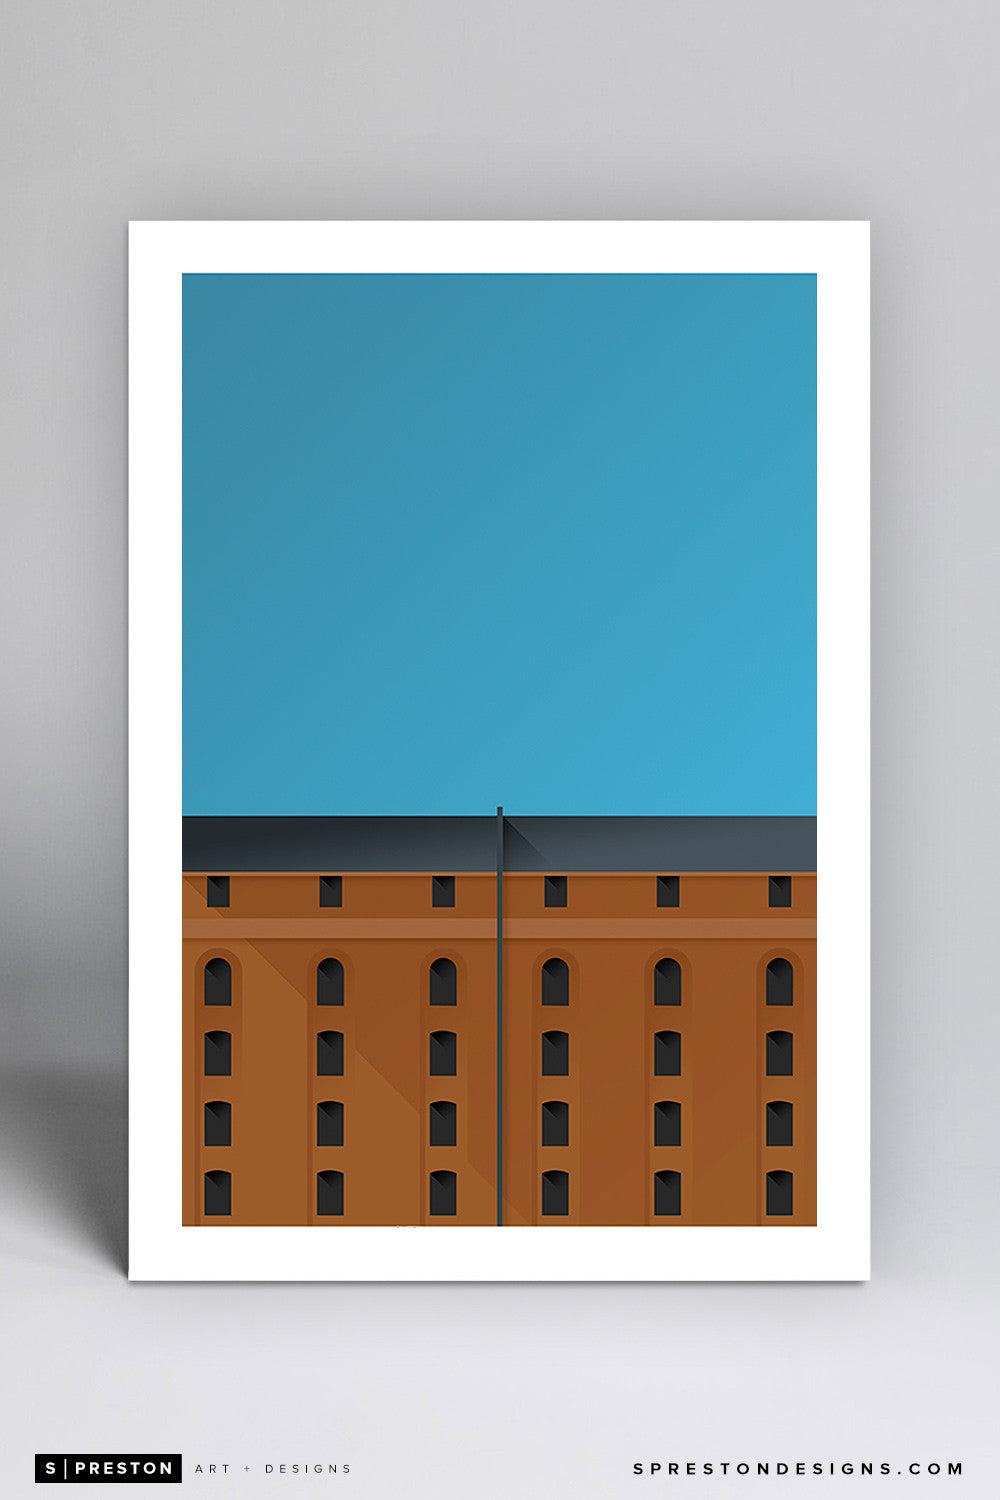 Minimalist Camden Yards Art Print - Baltimore Orioles - S. Preston Art + Designs